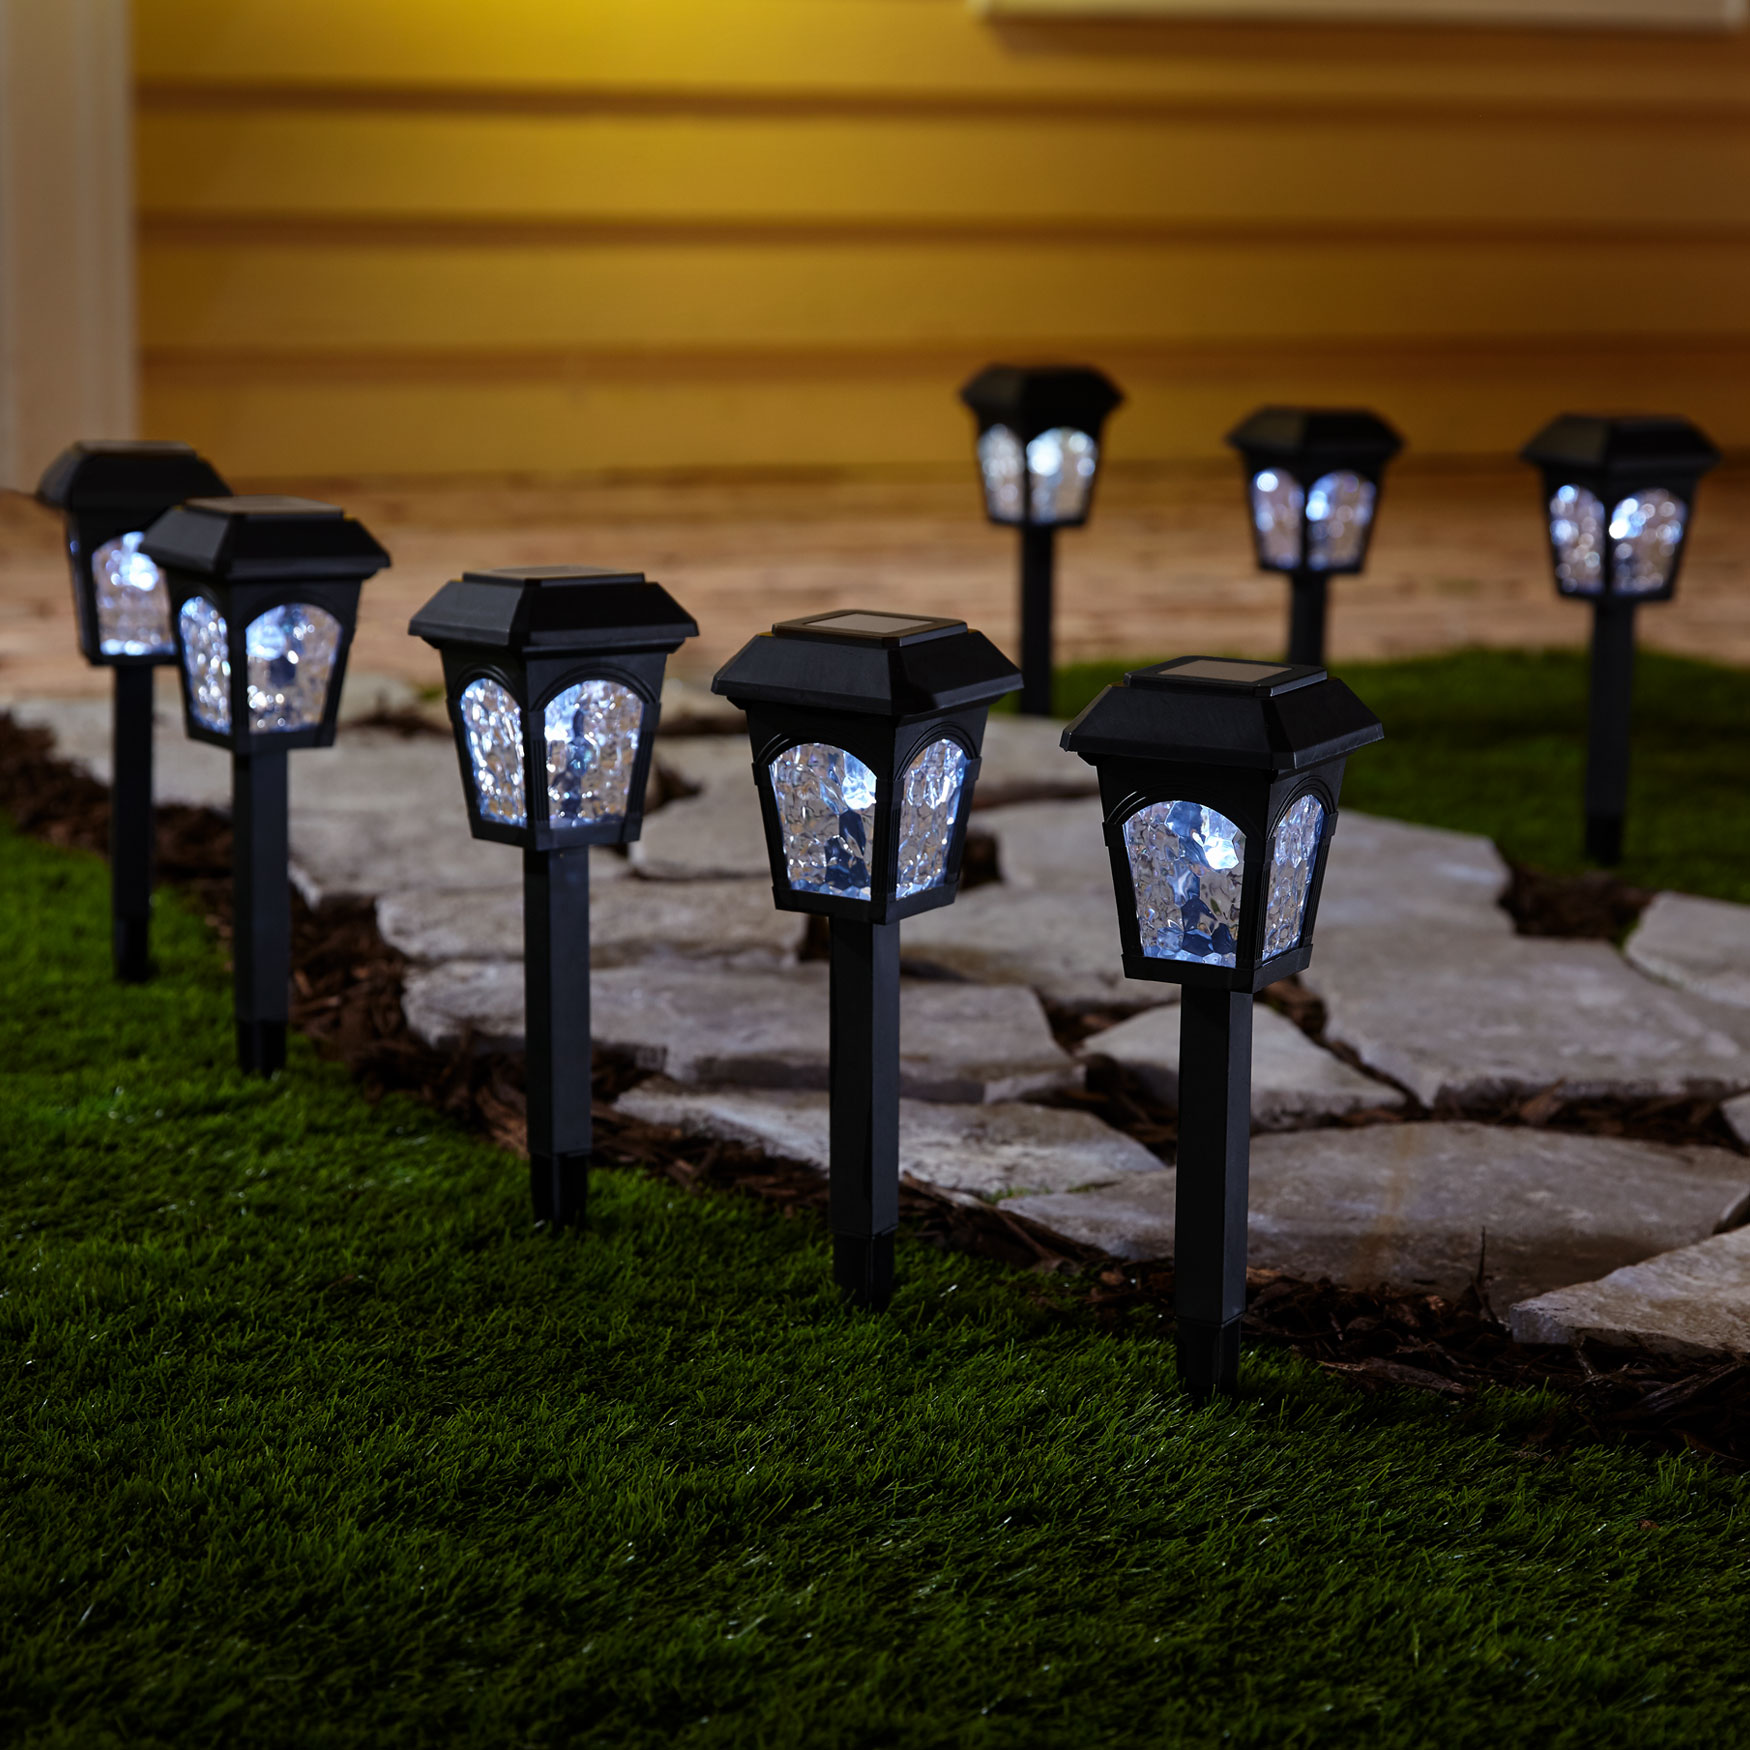 Black Solar Lights, Set of 8, BLACK